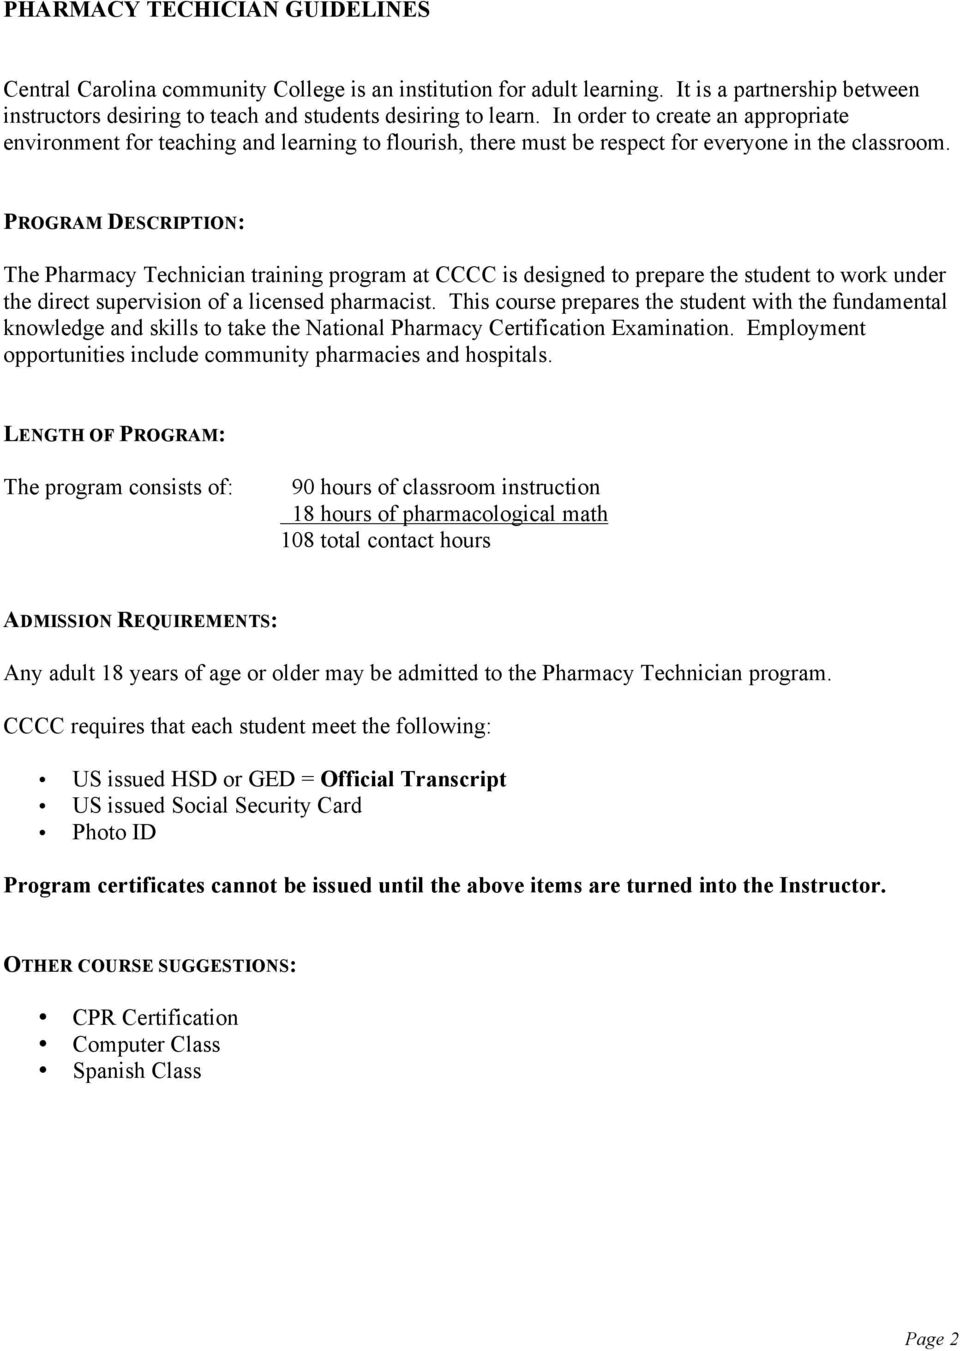 PROGRAM DESCRIPTION: The Pharmacy Technician training program at CCCC is designed to prepare the student to work under the direct supervision of a licensed pharmacist.